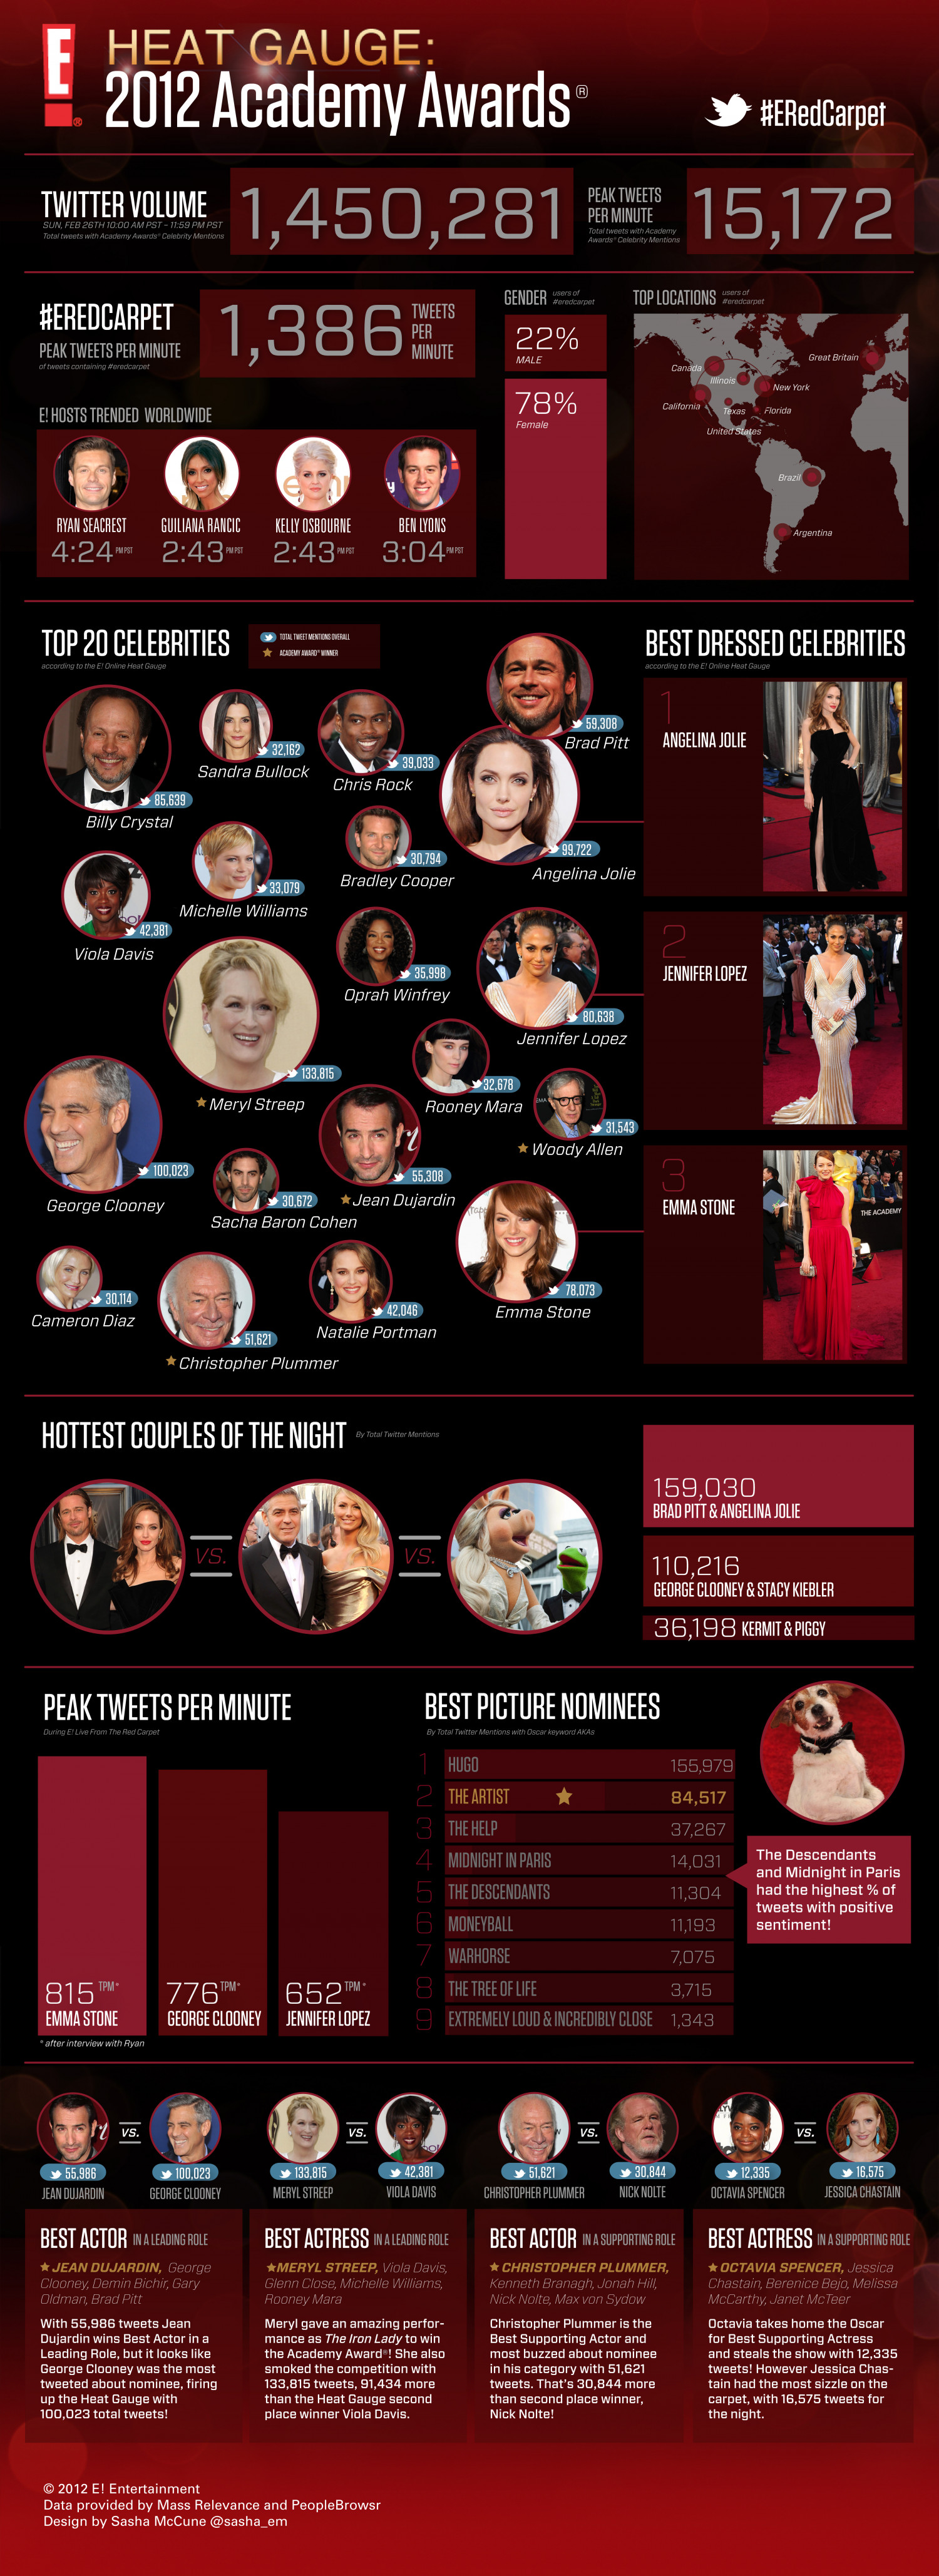 E! 2012 Academy Award Heat Gauge Infographic